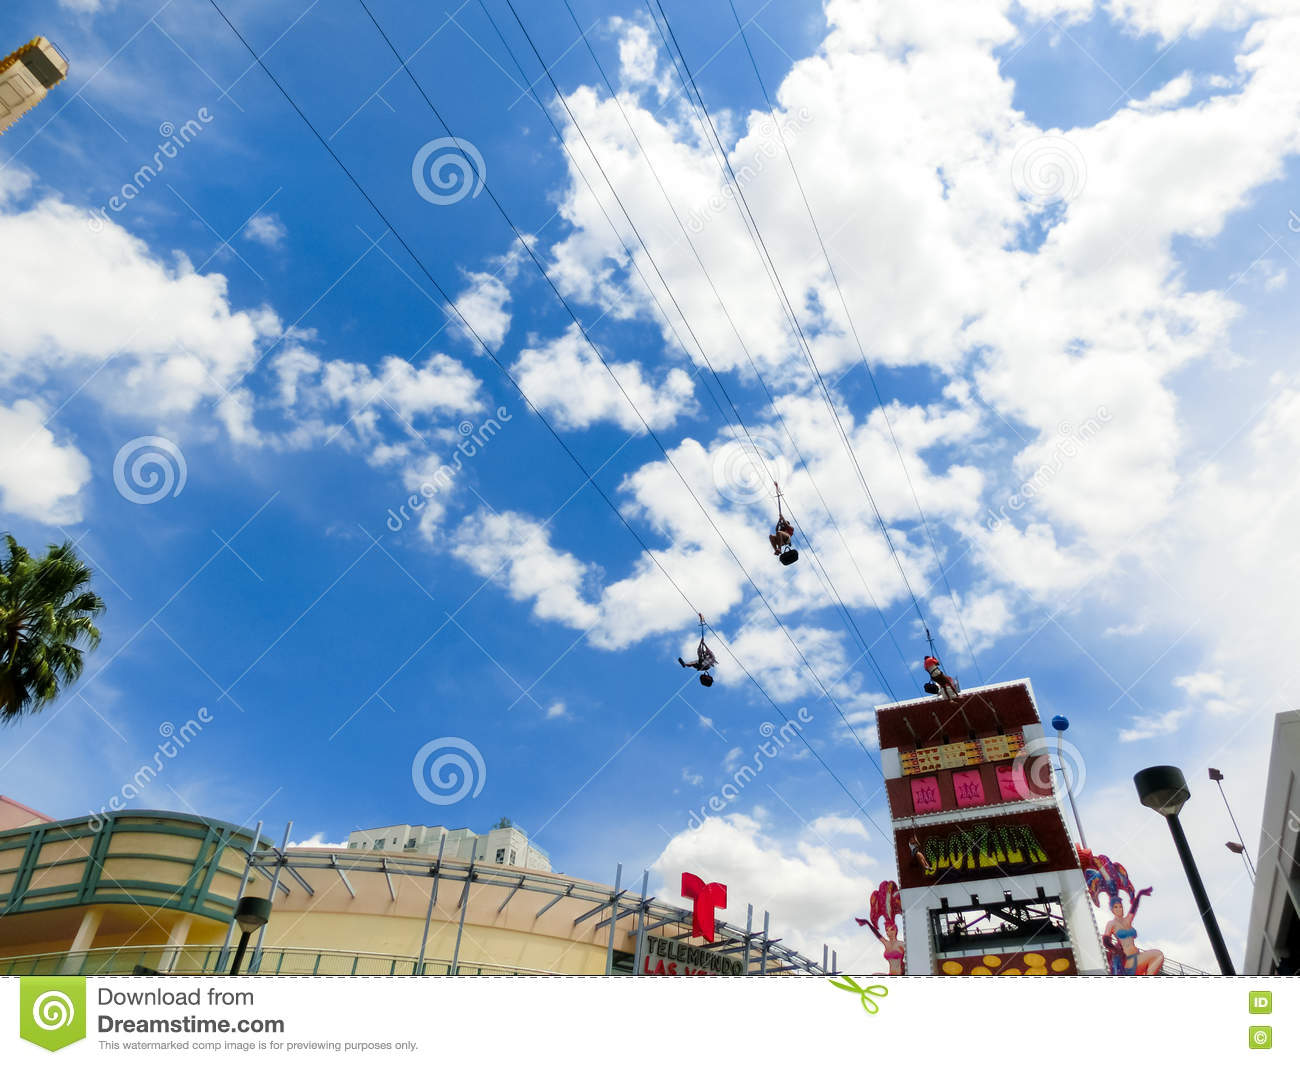 Las Vegas, USA - May 07, 2016: A people riding on the SlotZilla zip line attraction at the Fremont Street Experience.